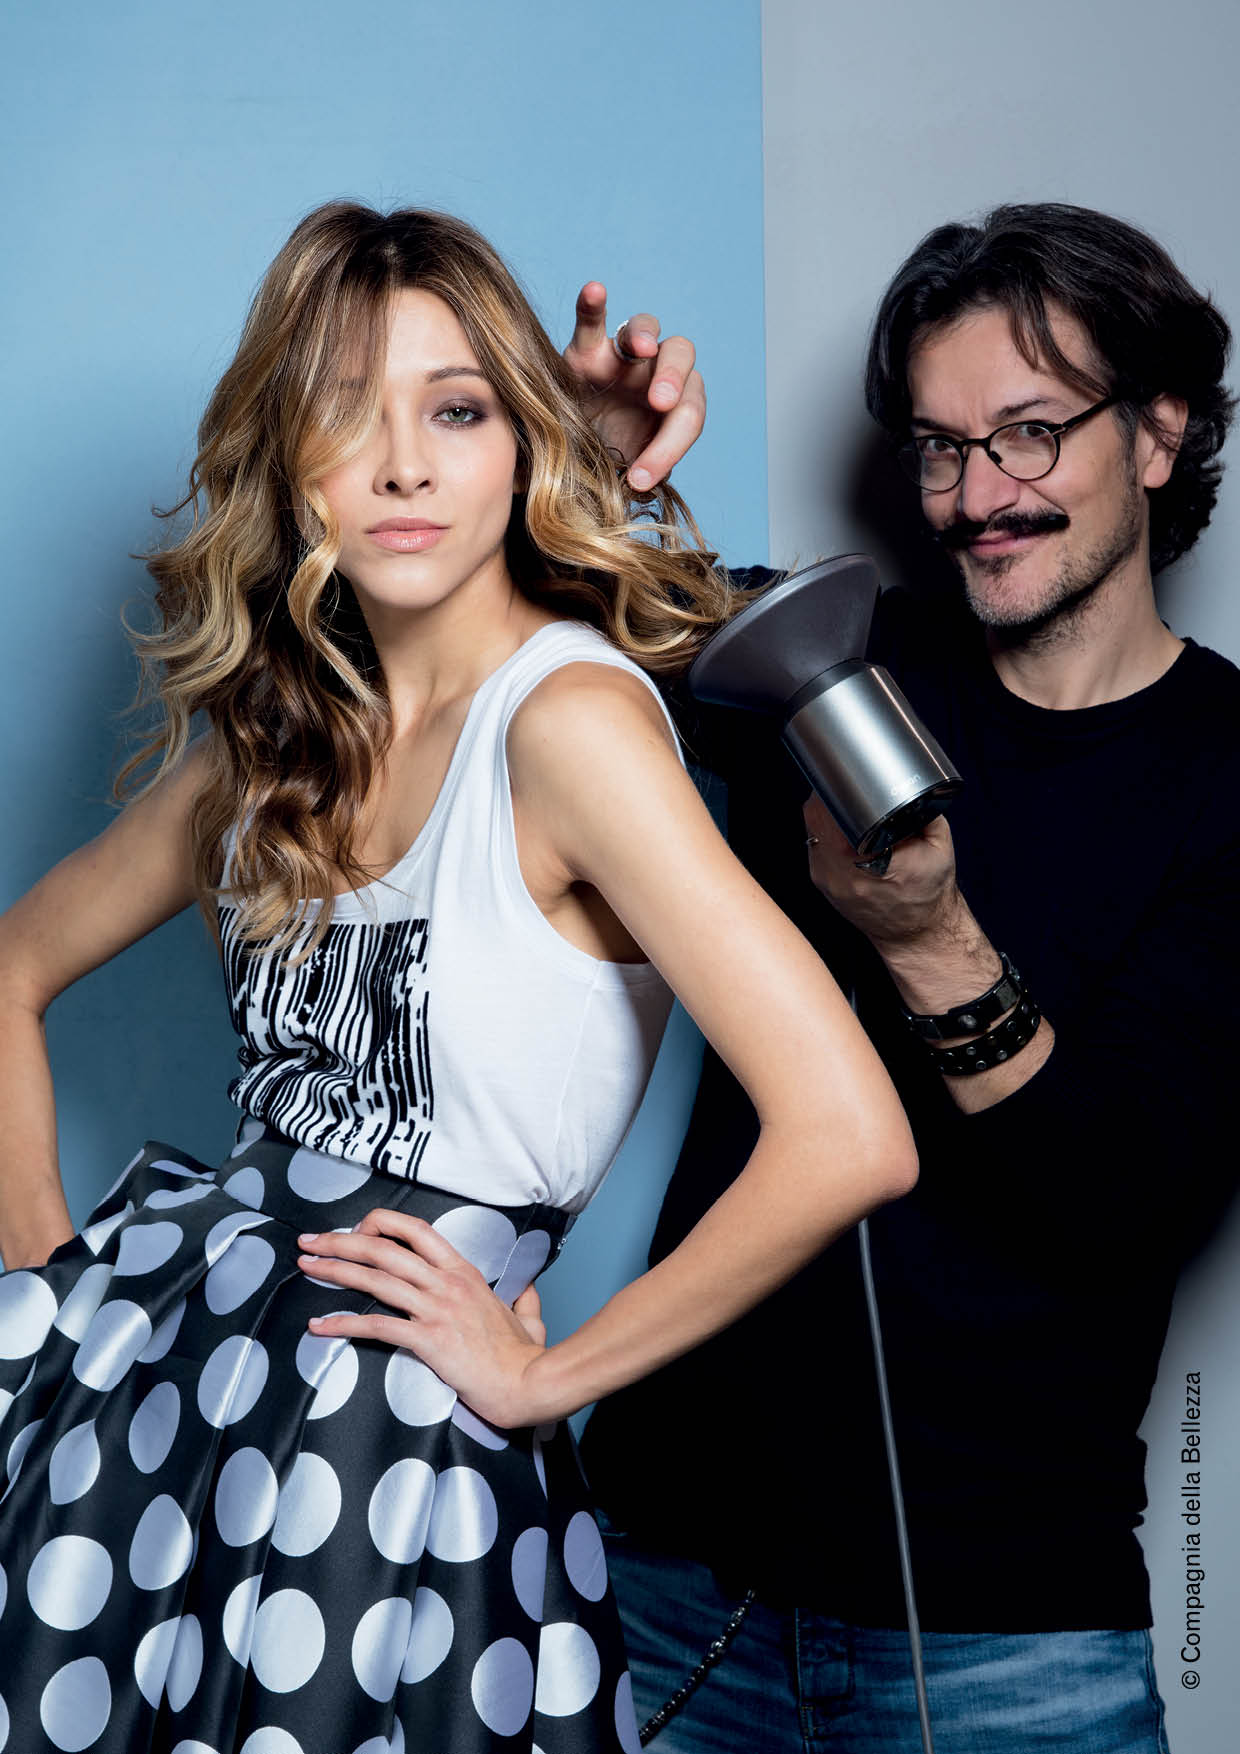 come-fare-i-capelli-con-le-onde-natural-waves-salvo-filetti-dyson-supersonic-compagnia-della-bellezza